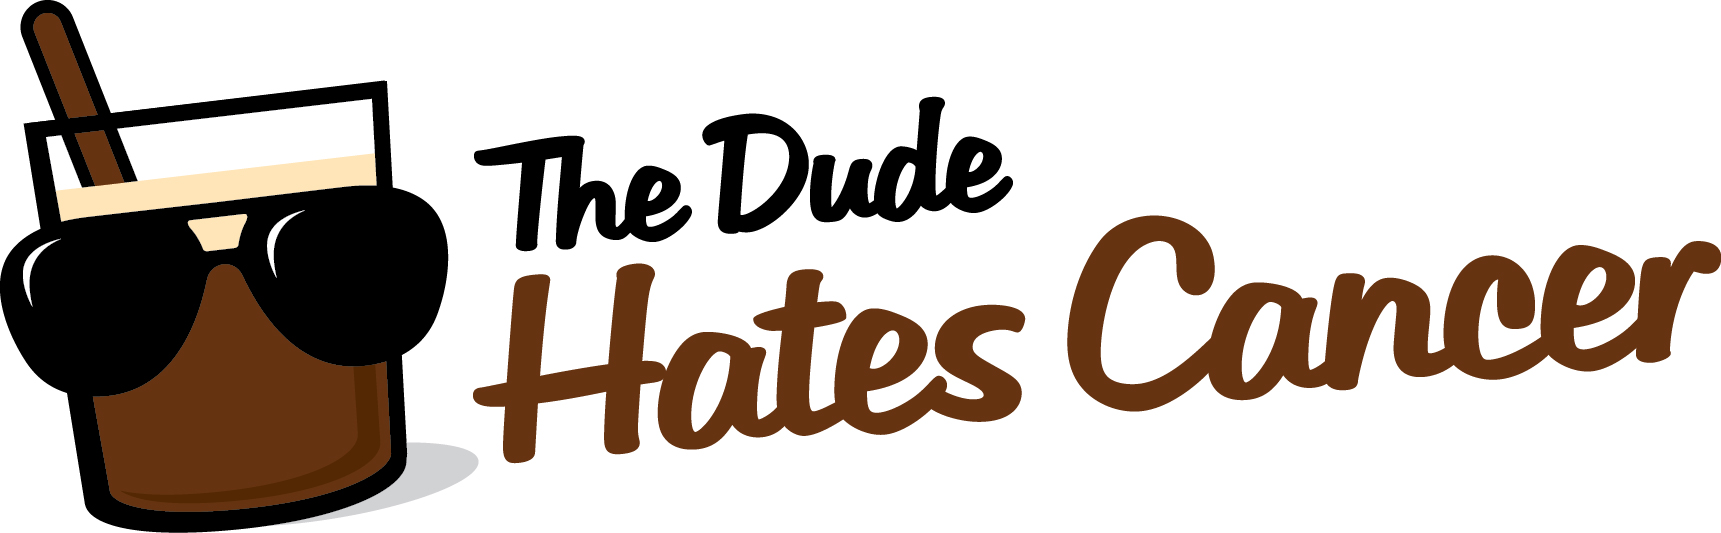 The Dude Hates Cancer Bowling Ball Logo